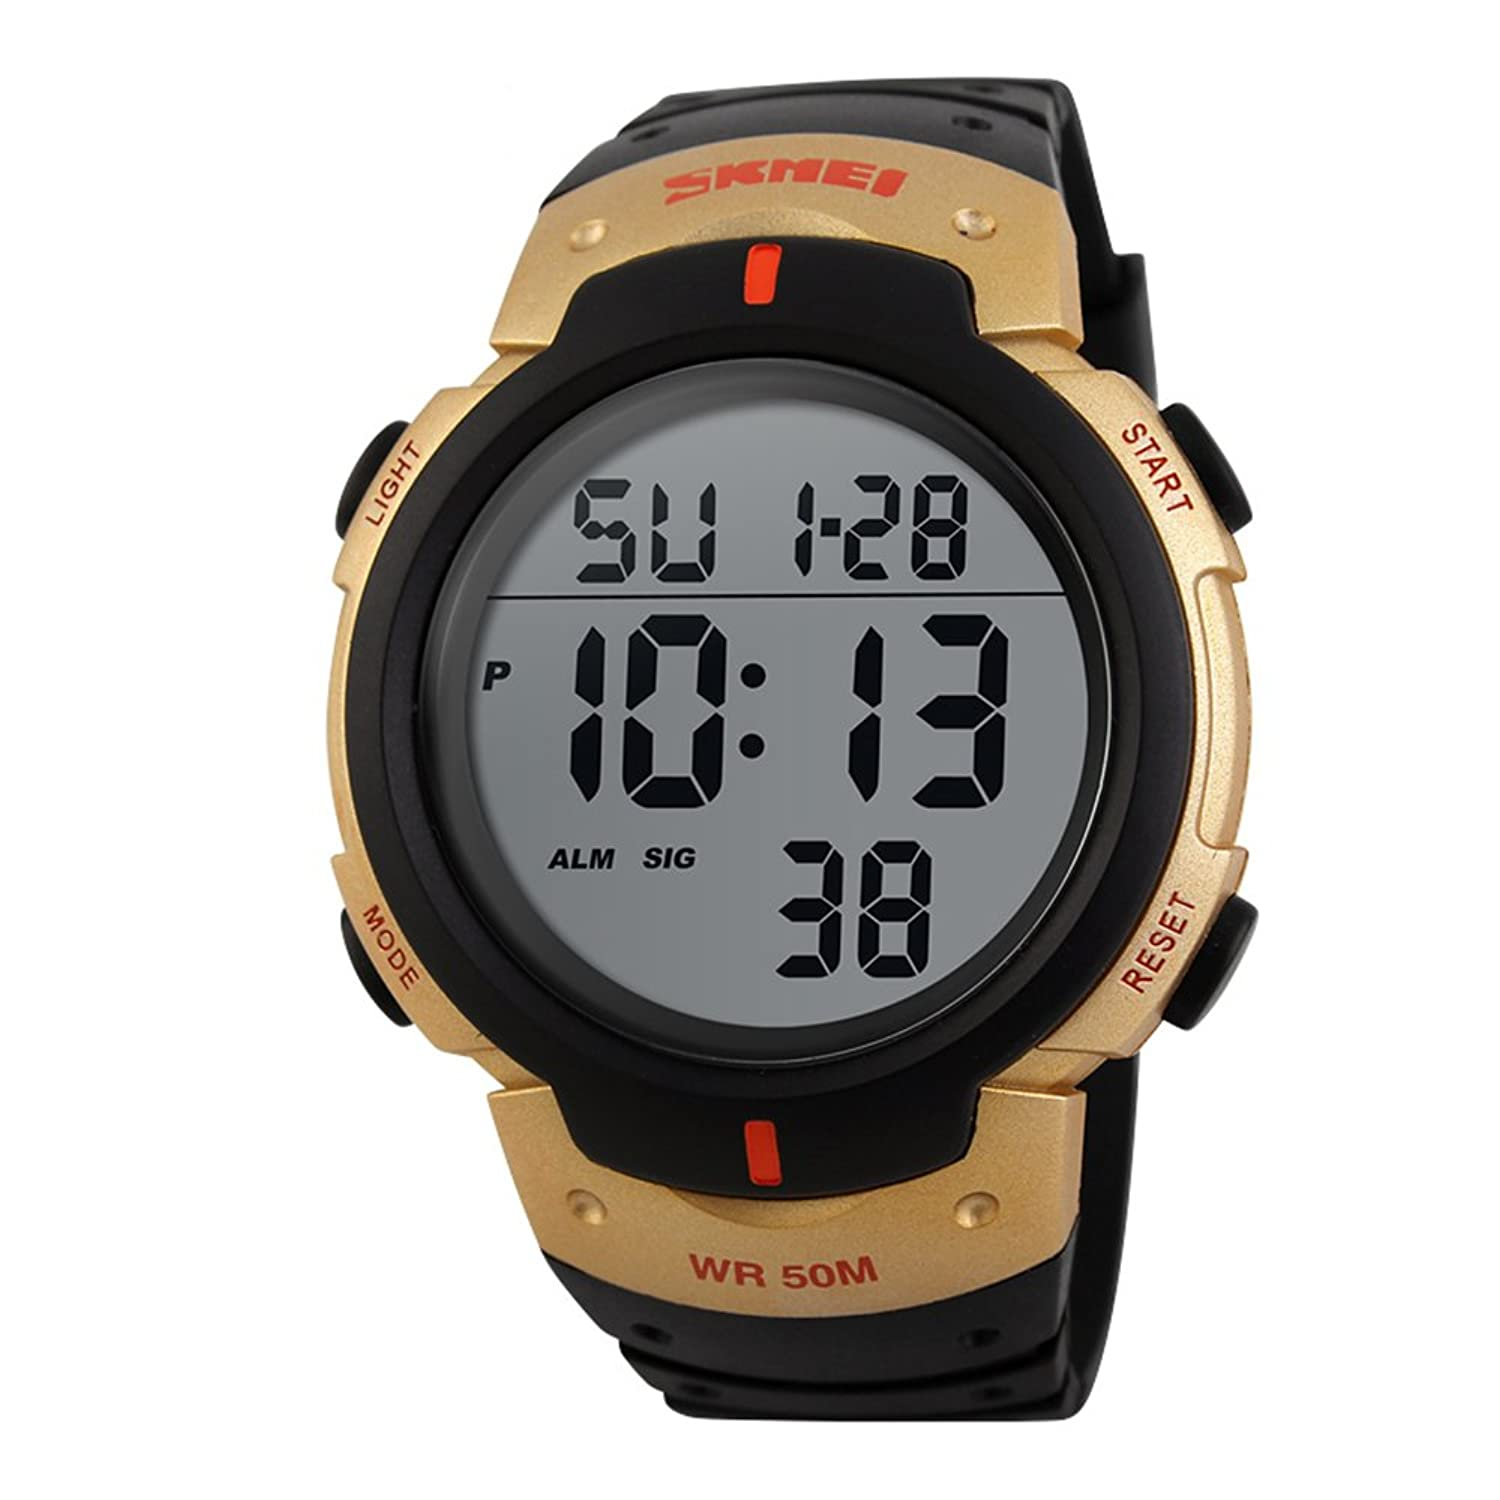 Amazon.com: Mens Big Digital Watch Water Resistant Black and Gold Sports Watch with Day Date Alarm: Watches